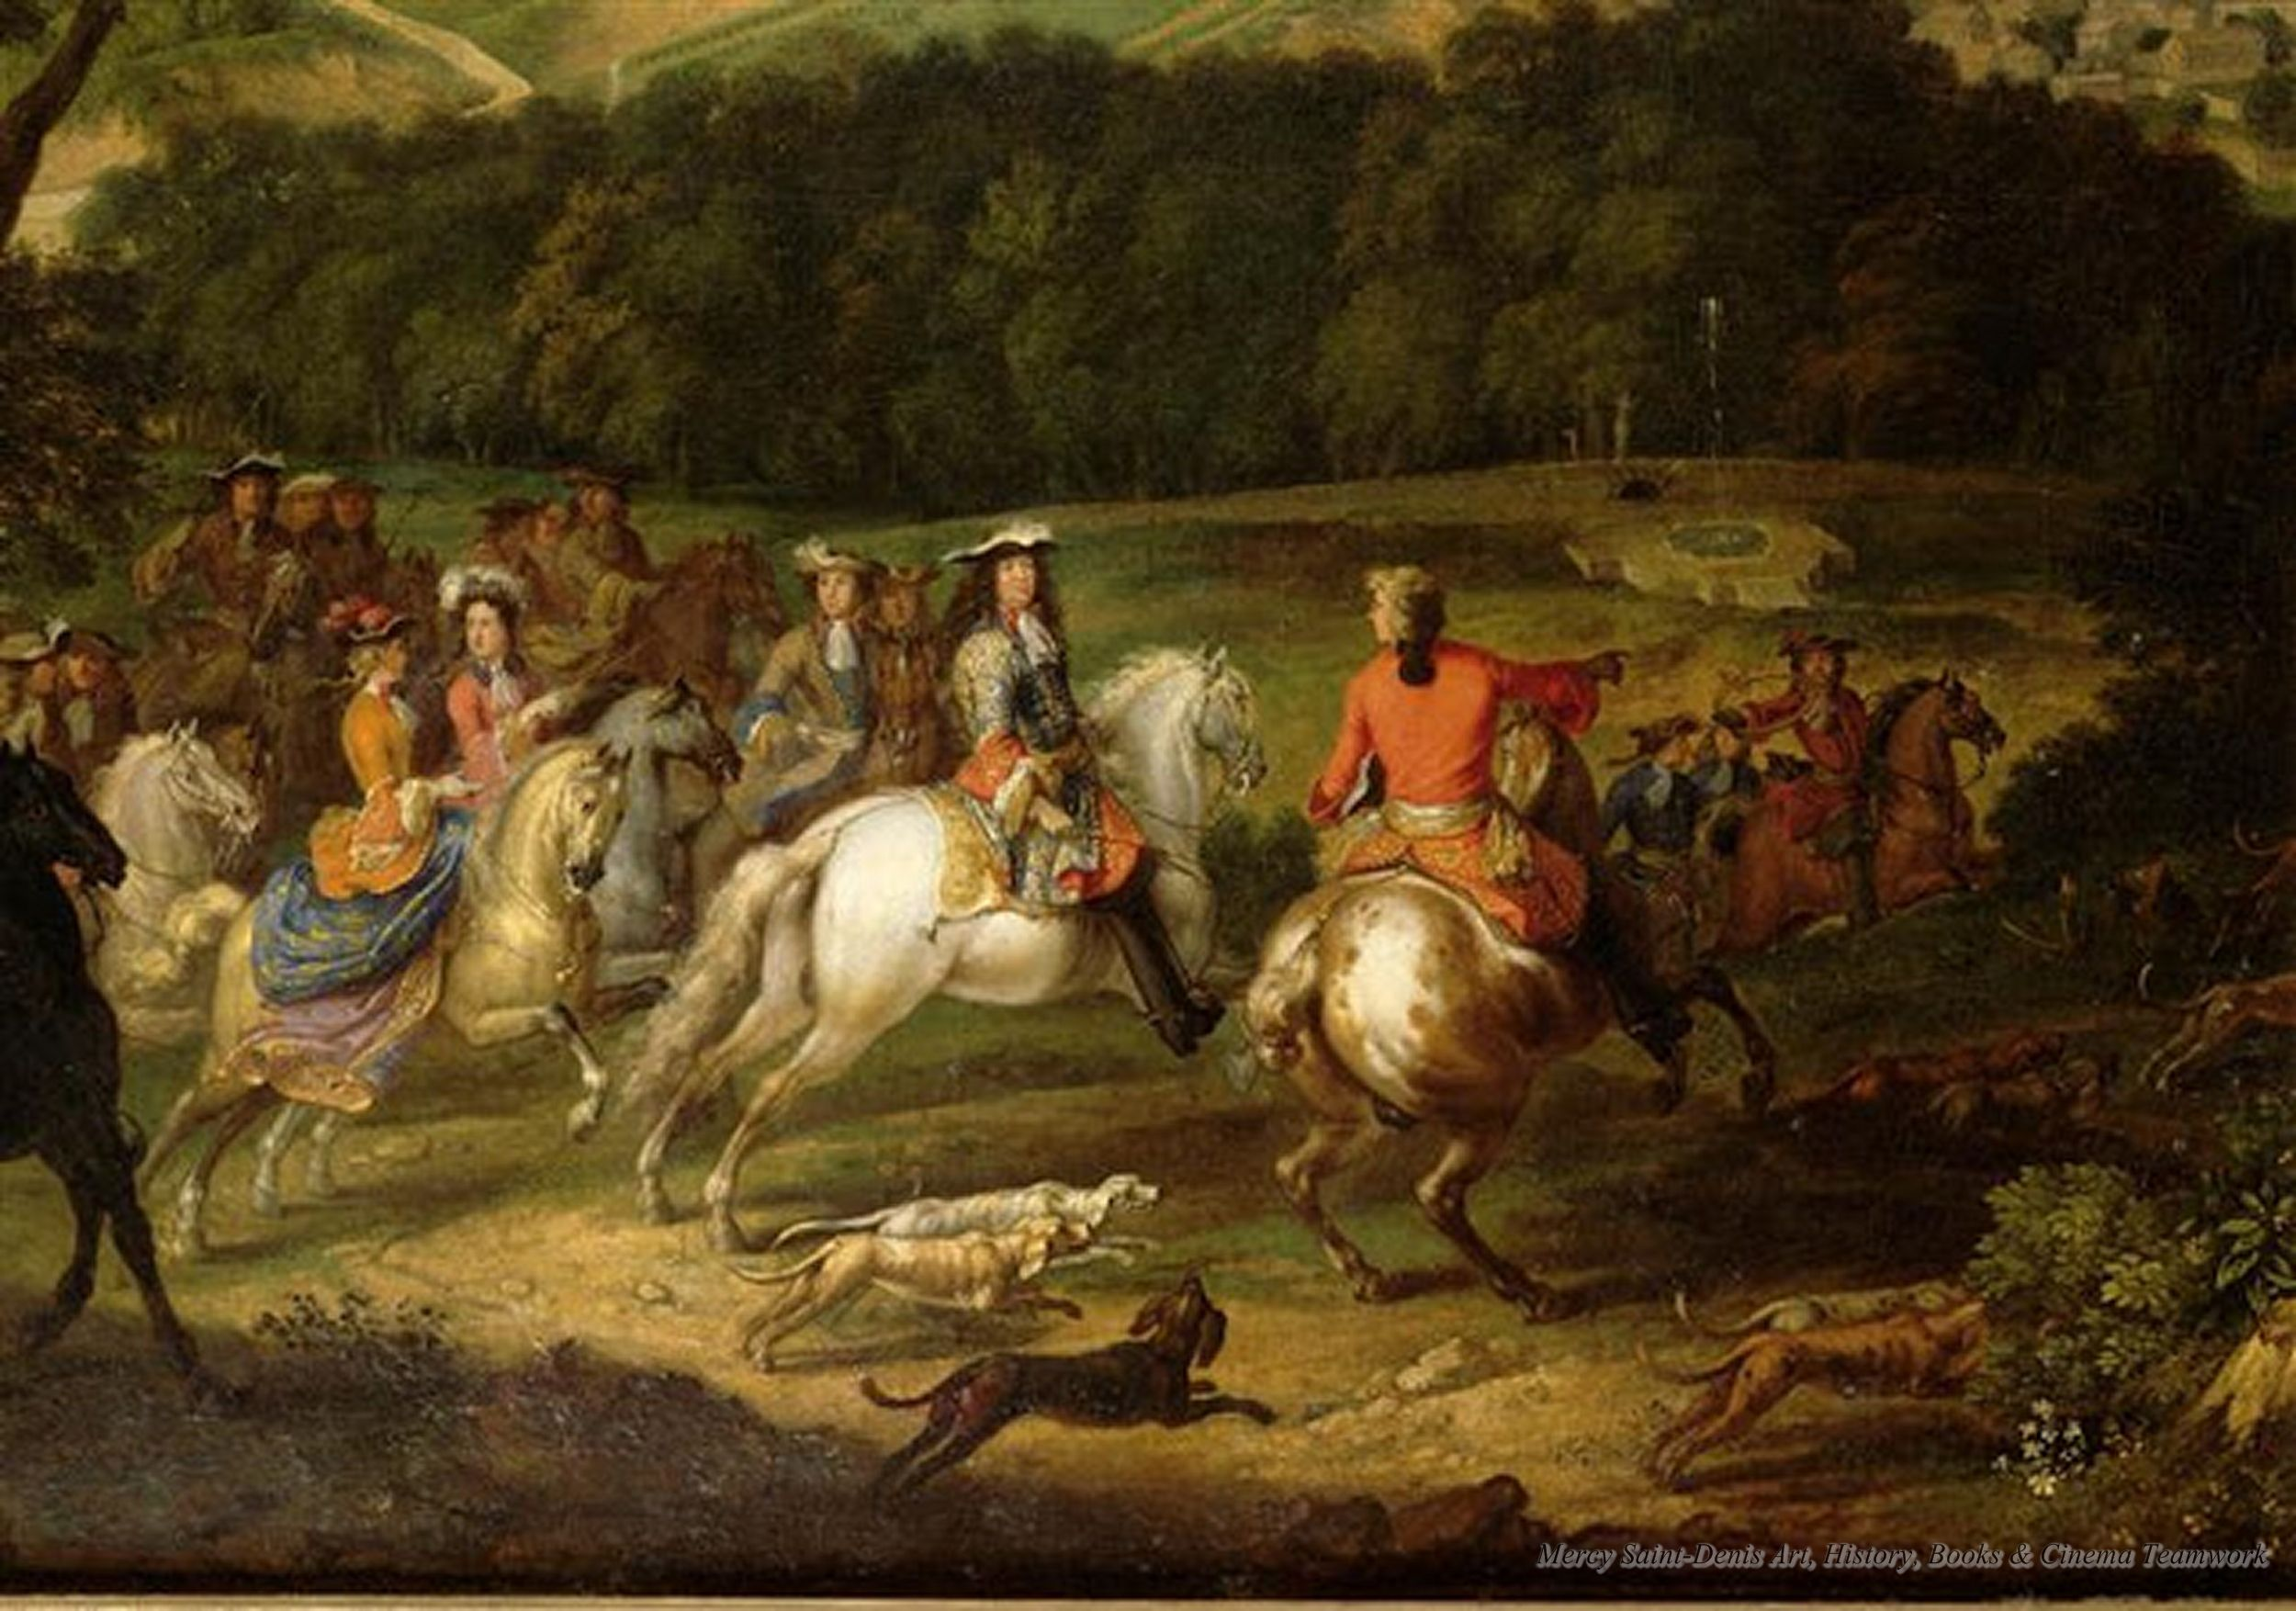 Louis XIV and his Court Hunting at the Chateau of Meudon by Steven van der  meulen,1670s. | Hamelin, Painting, Painting reproductions